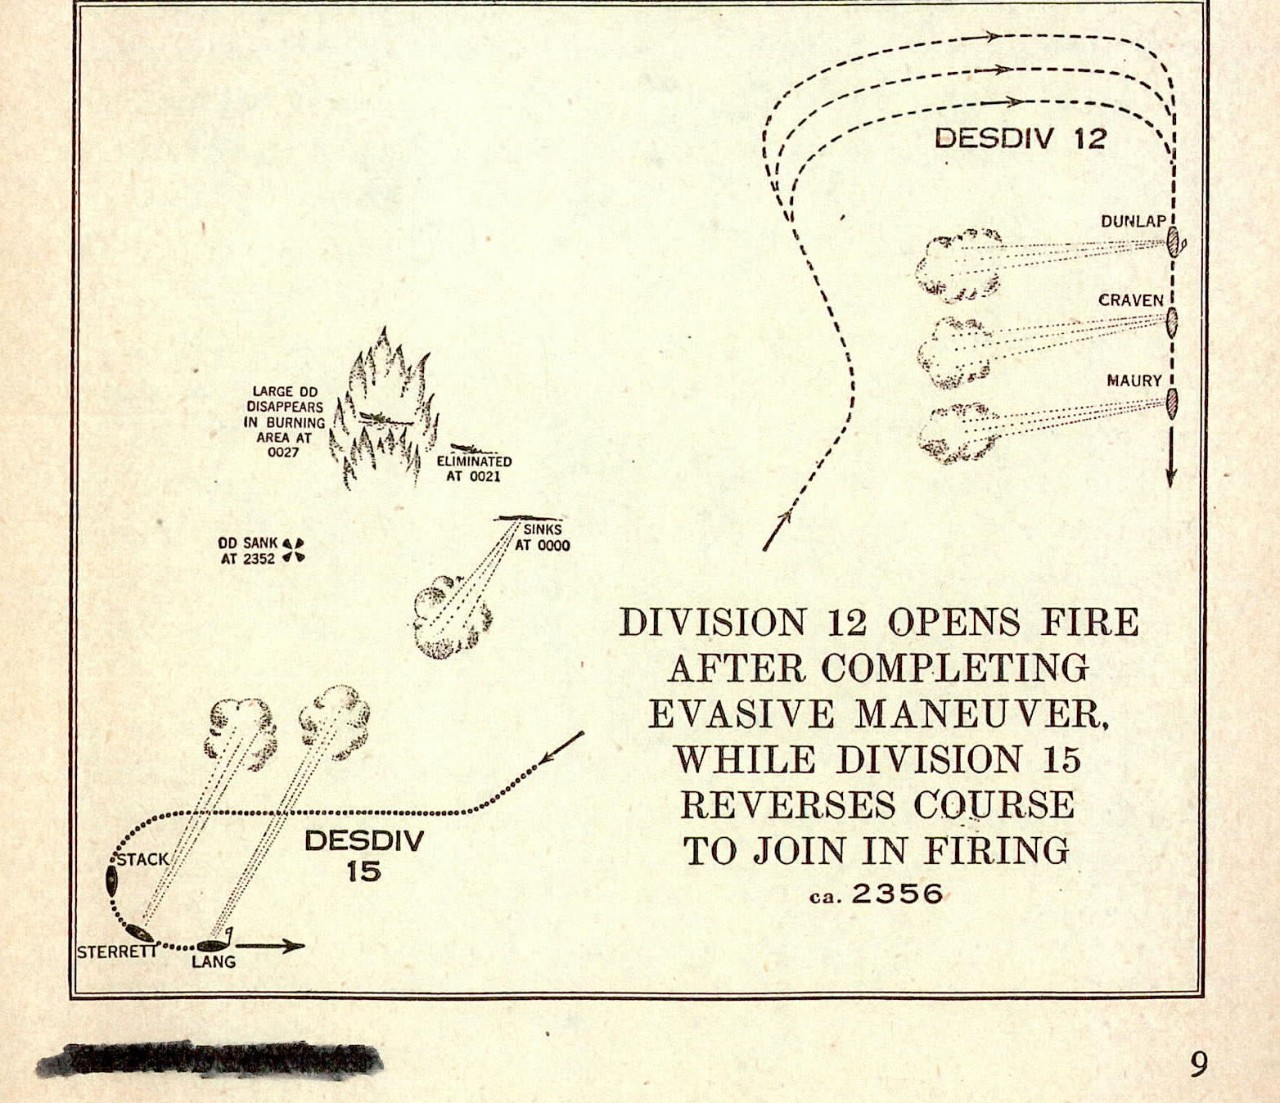 Division 12 opens fire adfter completing evasive maneuver 15 reverses course to join in firing